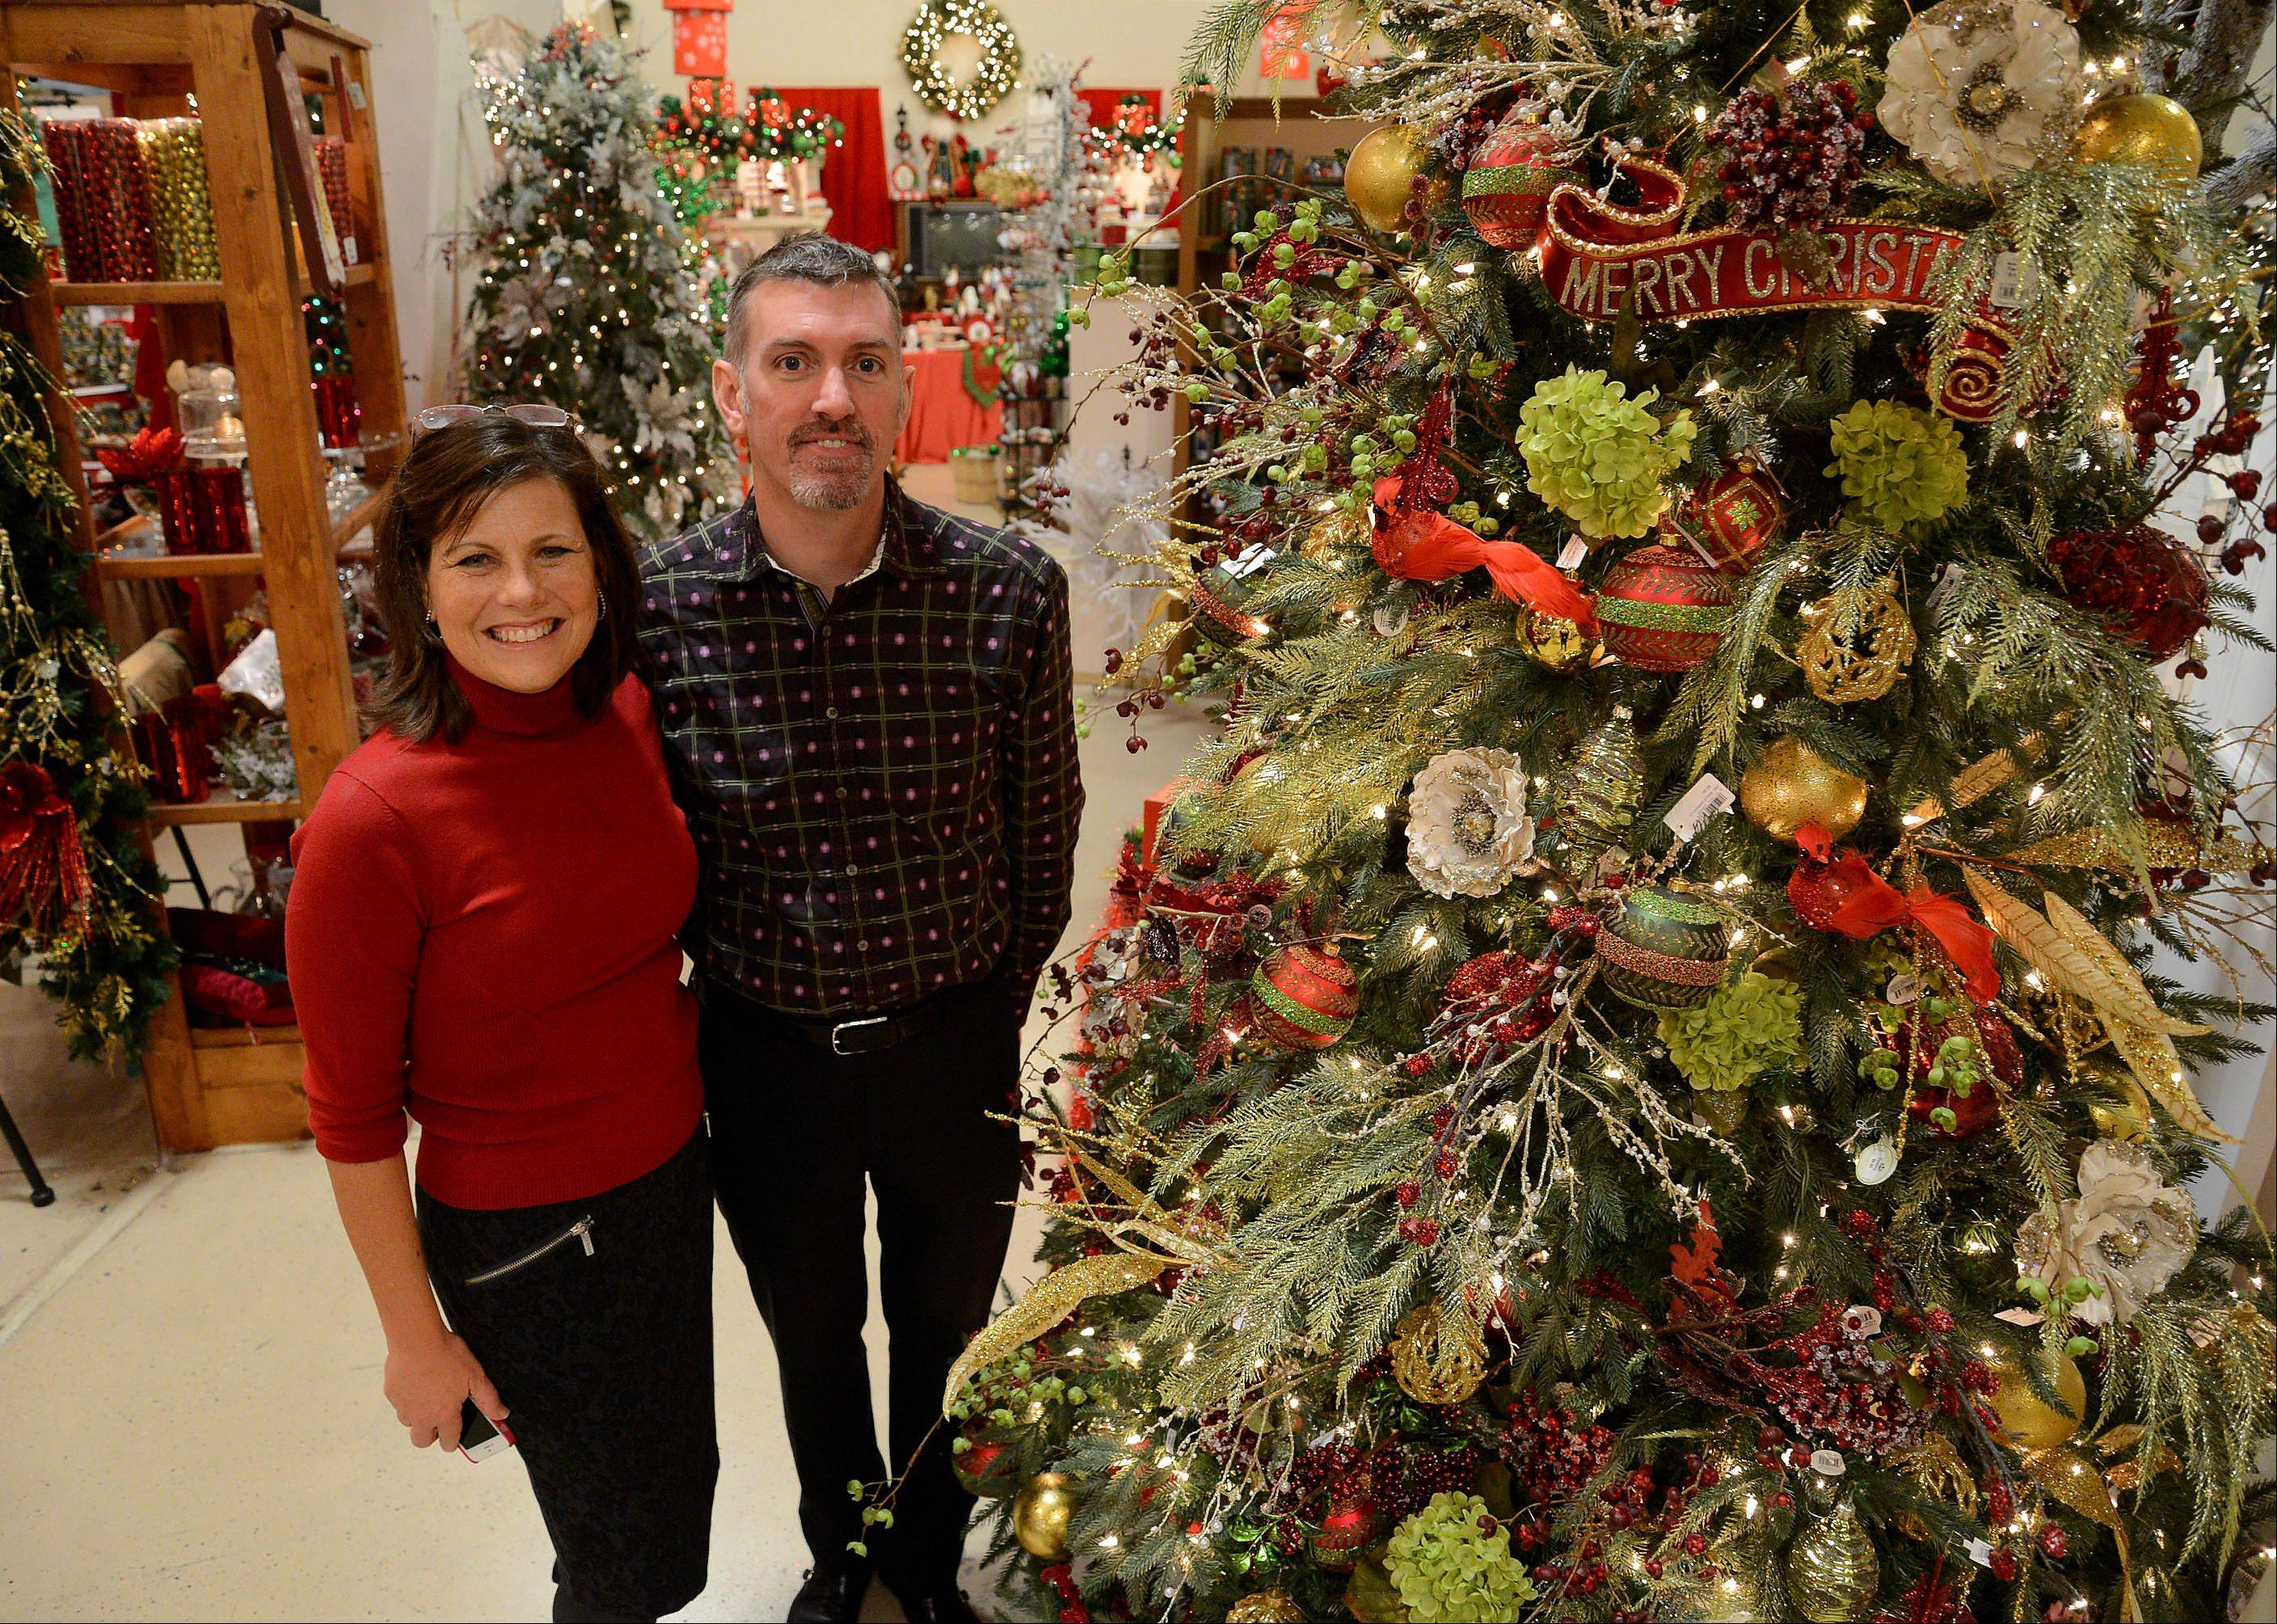 Owner Laurie Kane and designer James Whitehead of Treetime Christmas Creations in Lake Barrington, standing next to a tree with updated traditional colors and feel.